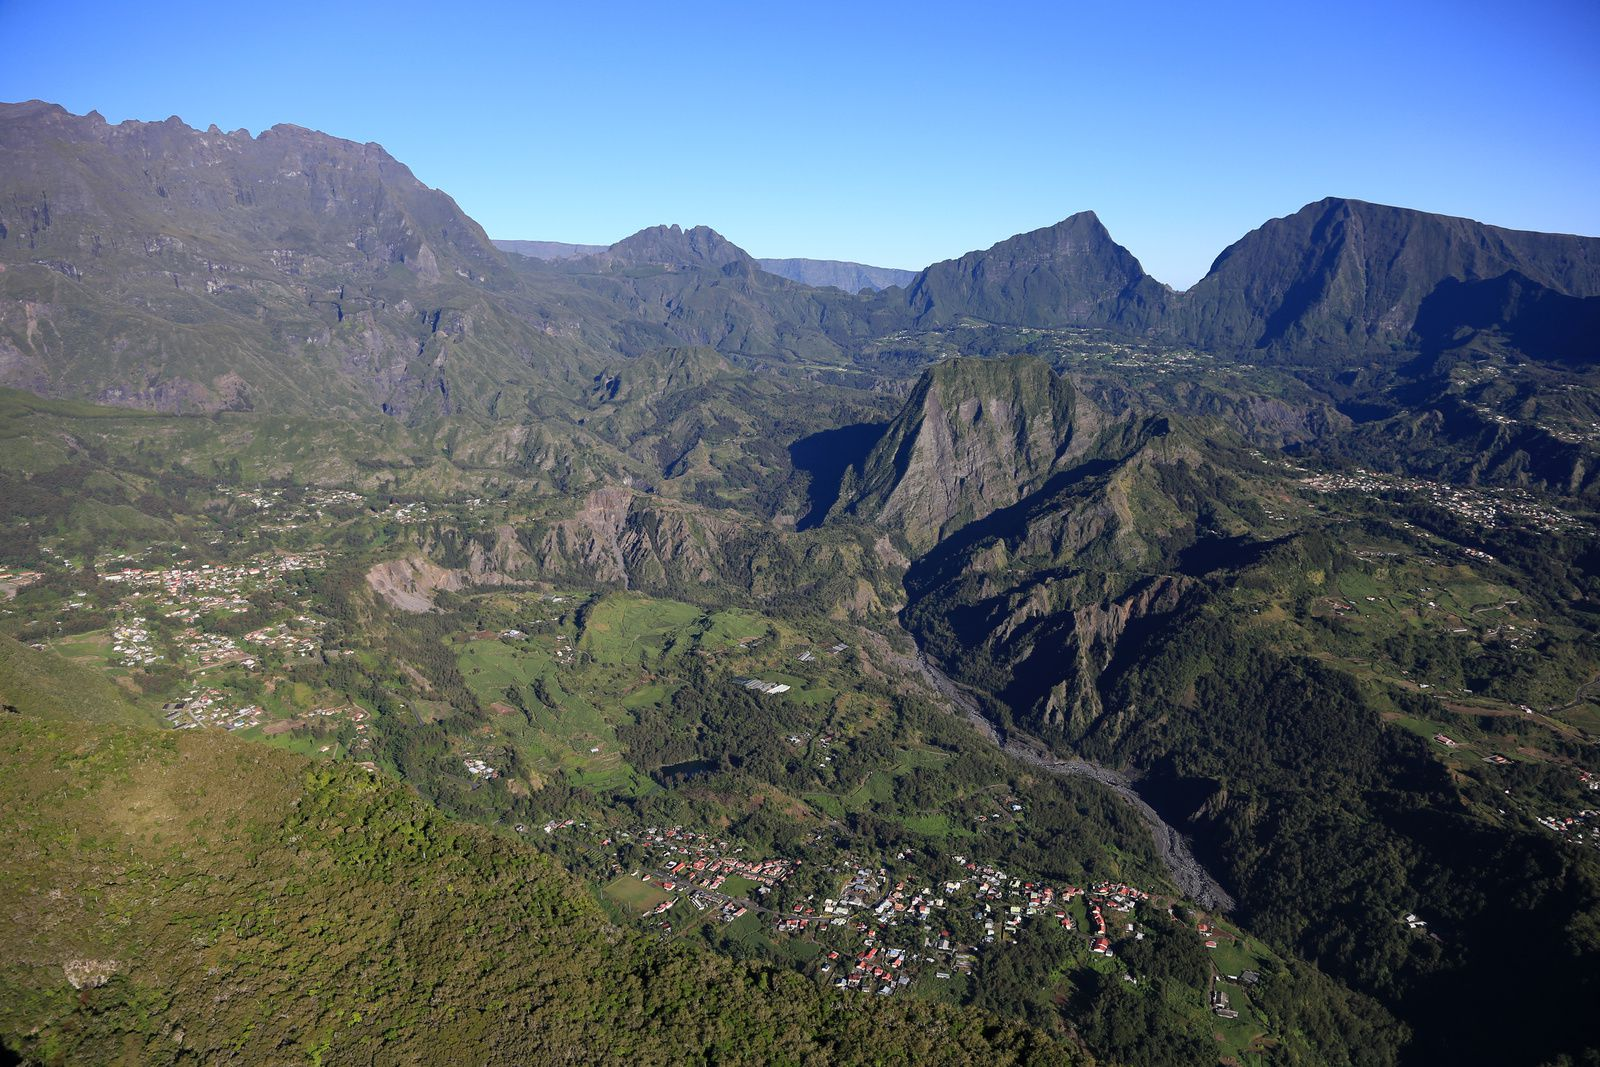 Piton des Neiges - circus of Salazie, seen from Belvedere de Bélouve; In the center, the Piton d'Enchaing - picture © Bernard Duyck / june 2017